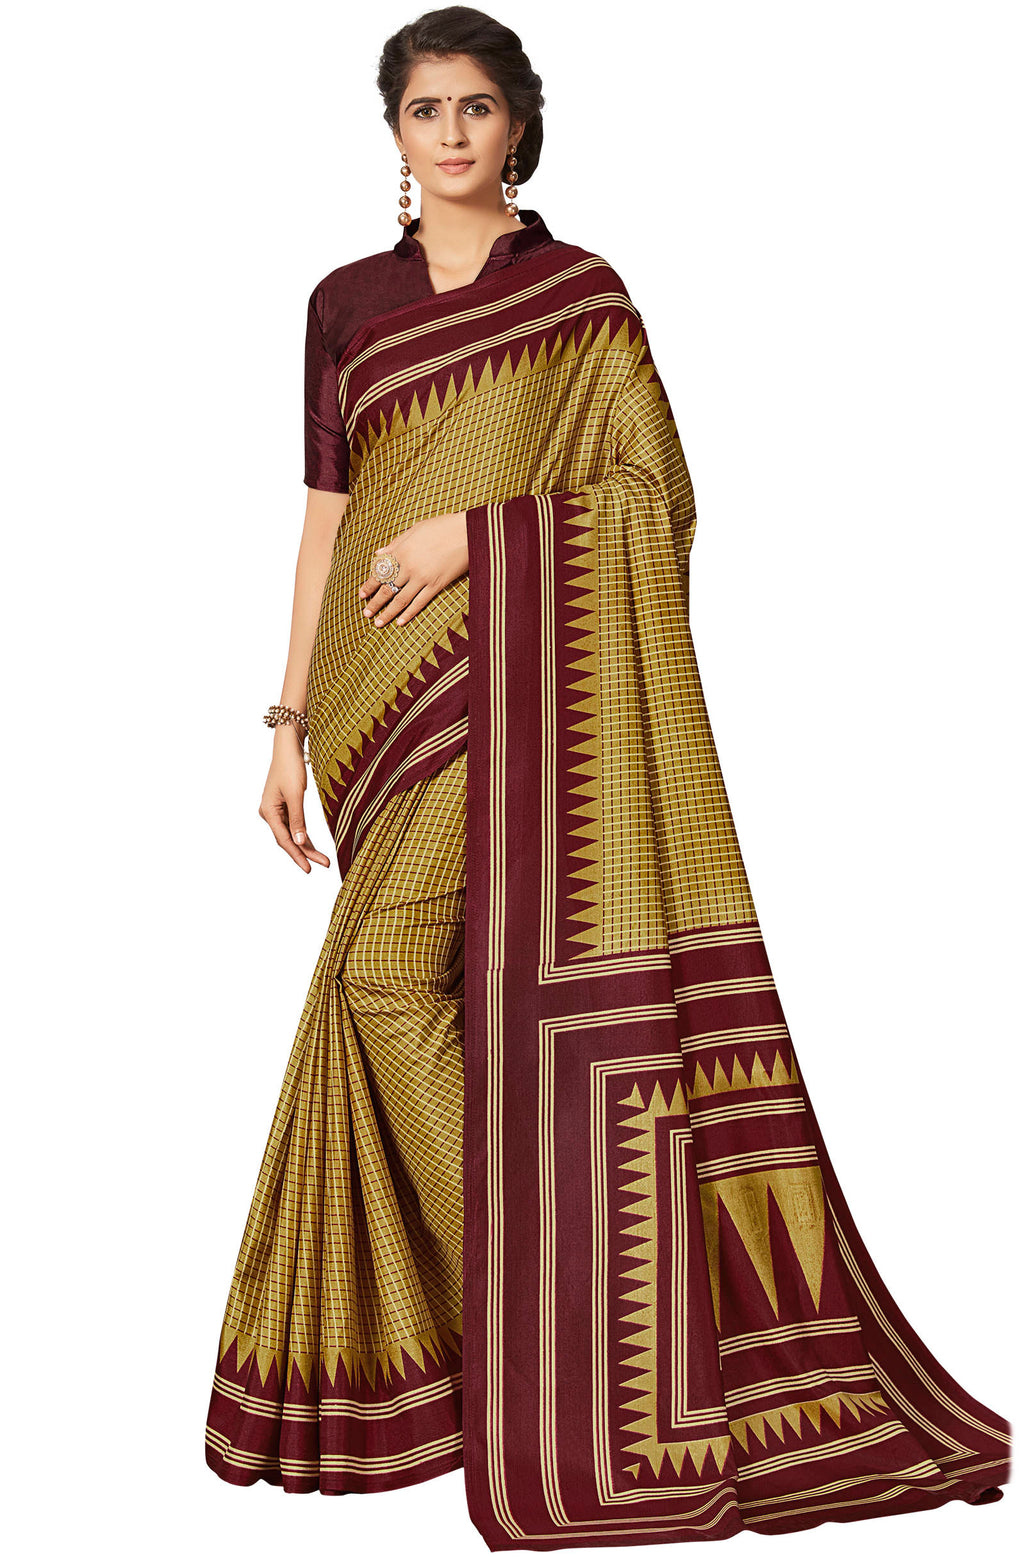 Yellow & Red Color Crepe Printed Office Wear Sarees NYF-7685